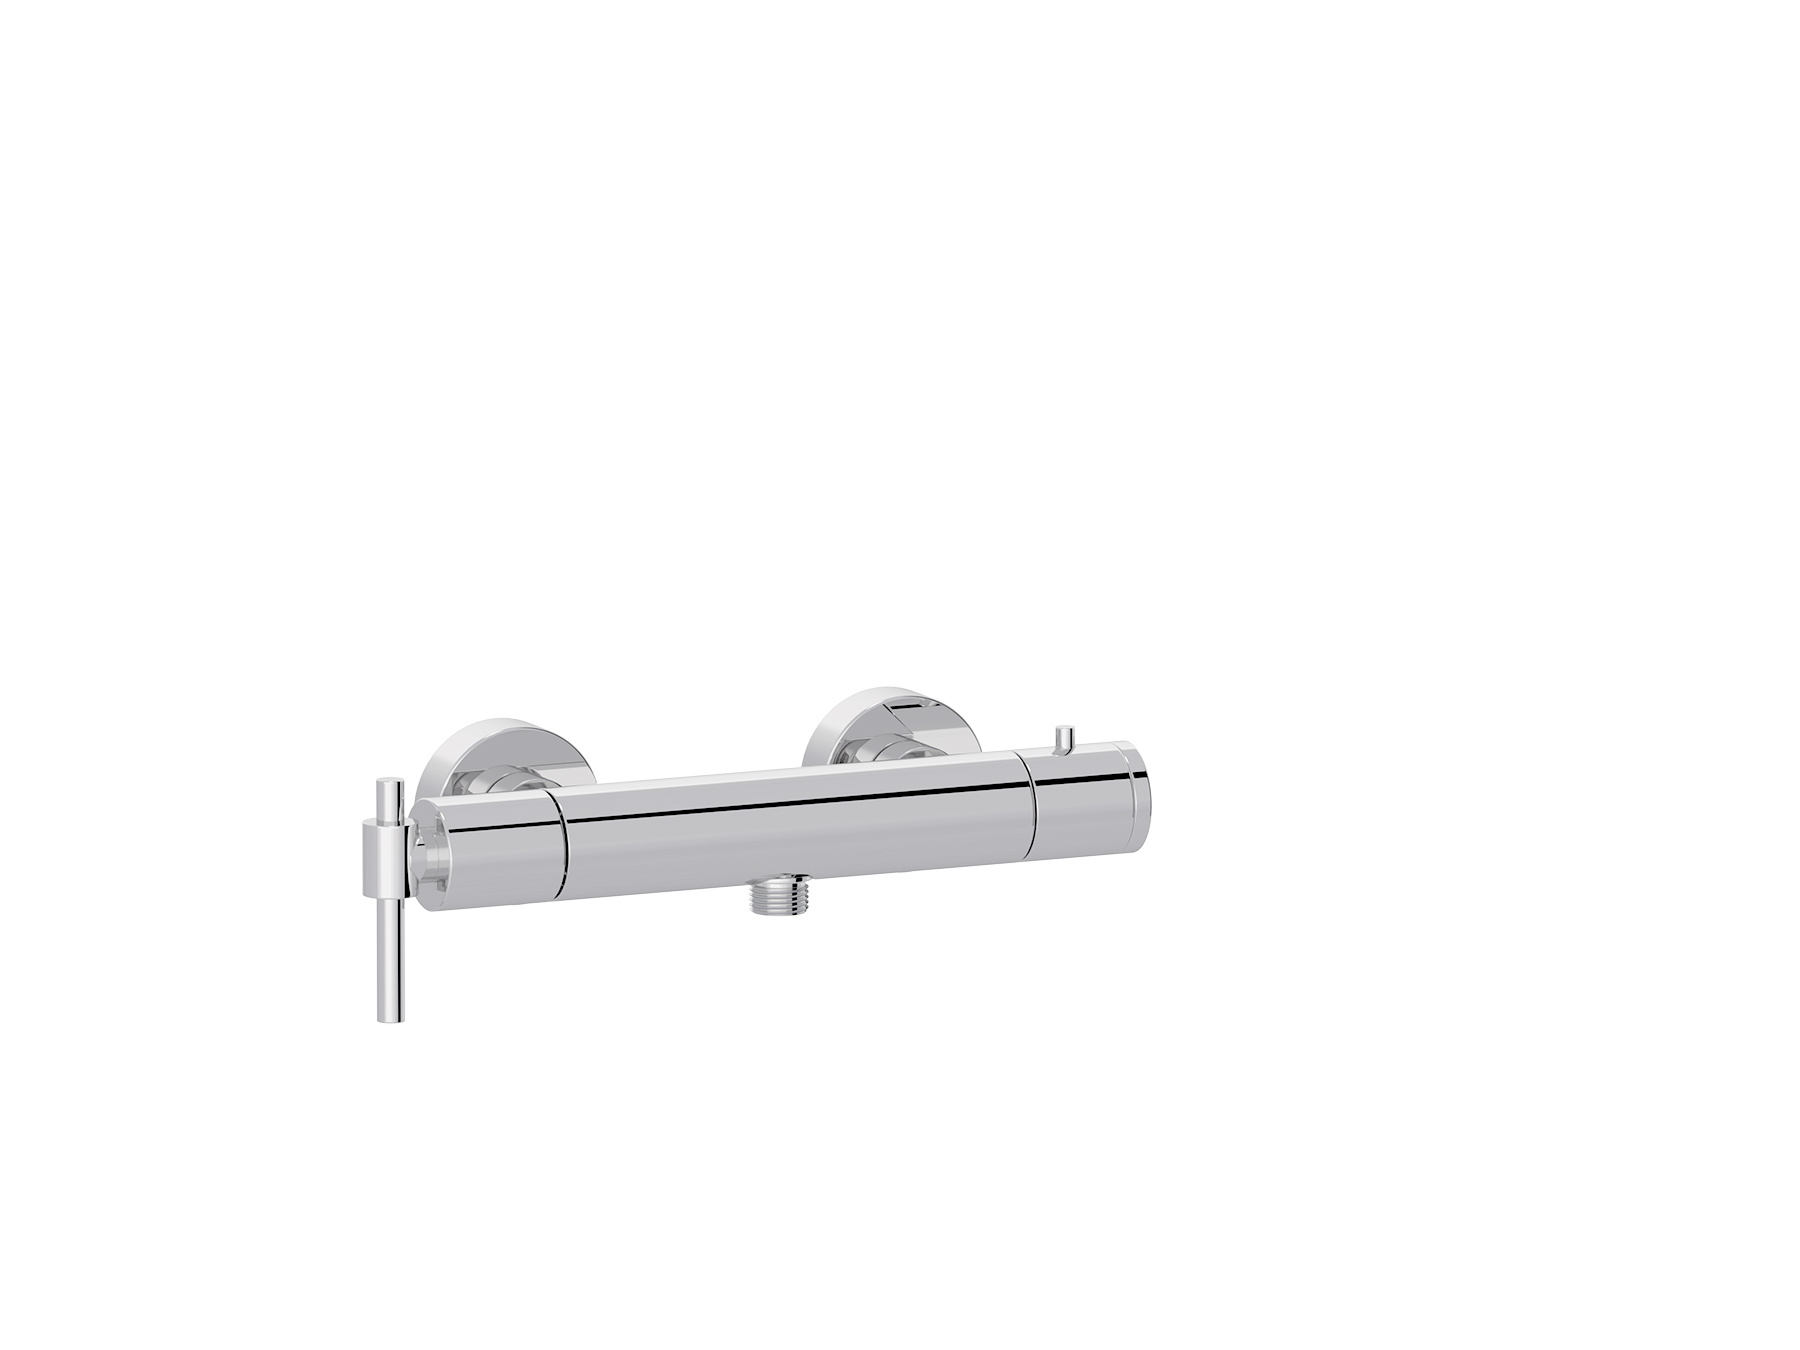 Wall-mounted shower thermostat 4527.--.73